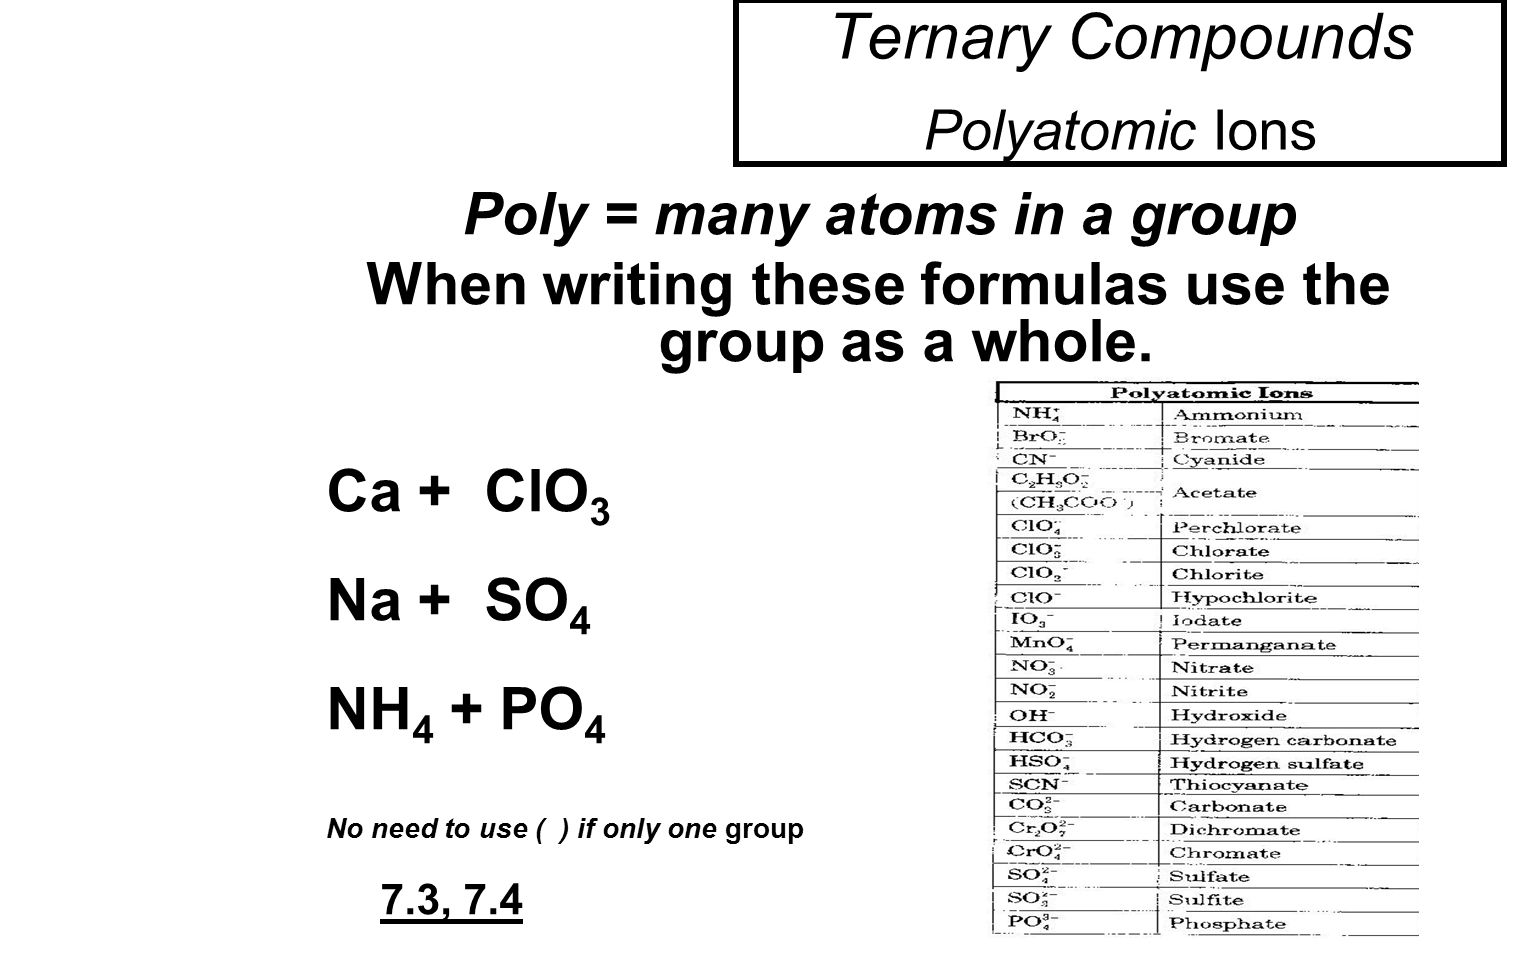 Worksheet Ternary Ionic Compounds Worksheet Grass Fedjp